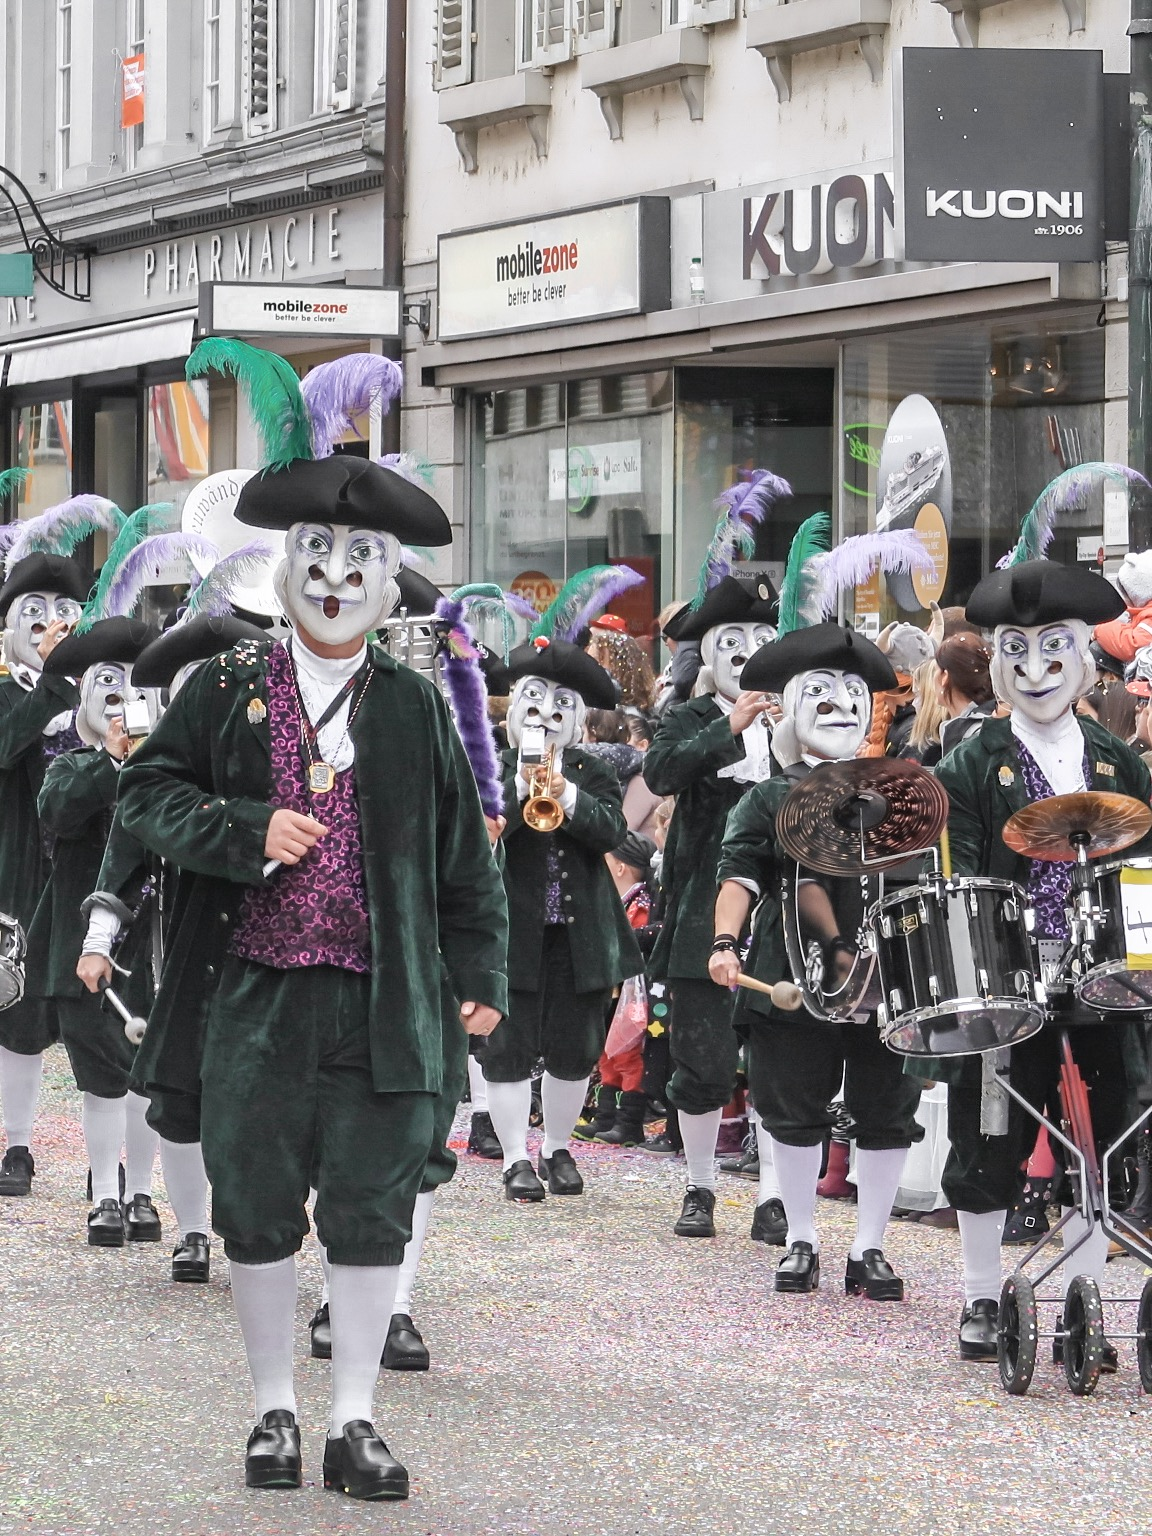 Starting March with Fasnacht in Baden